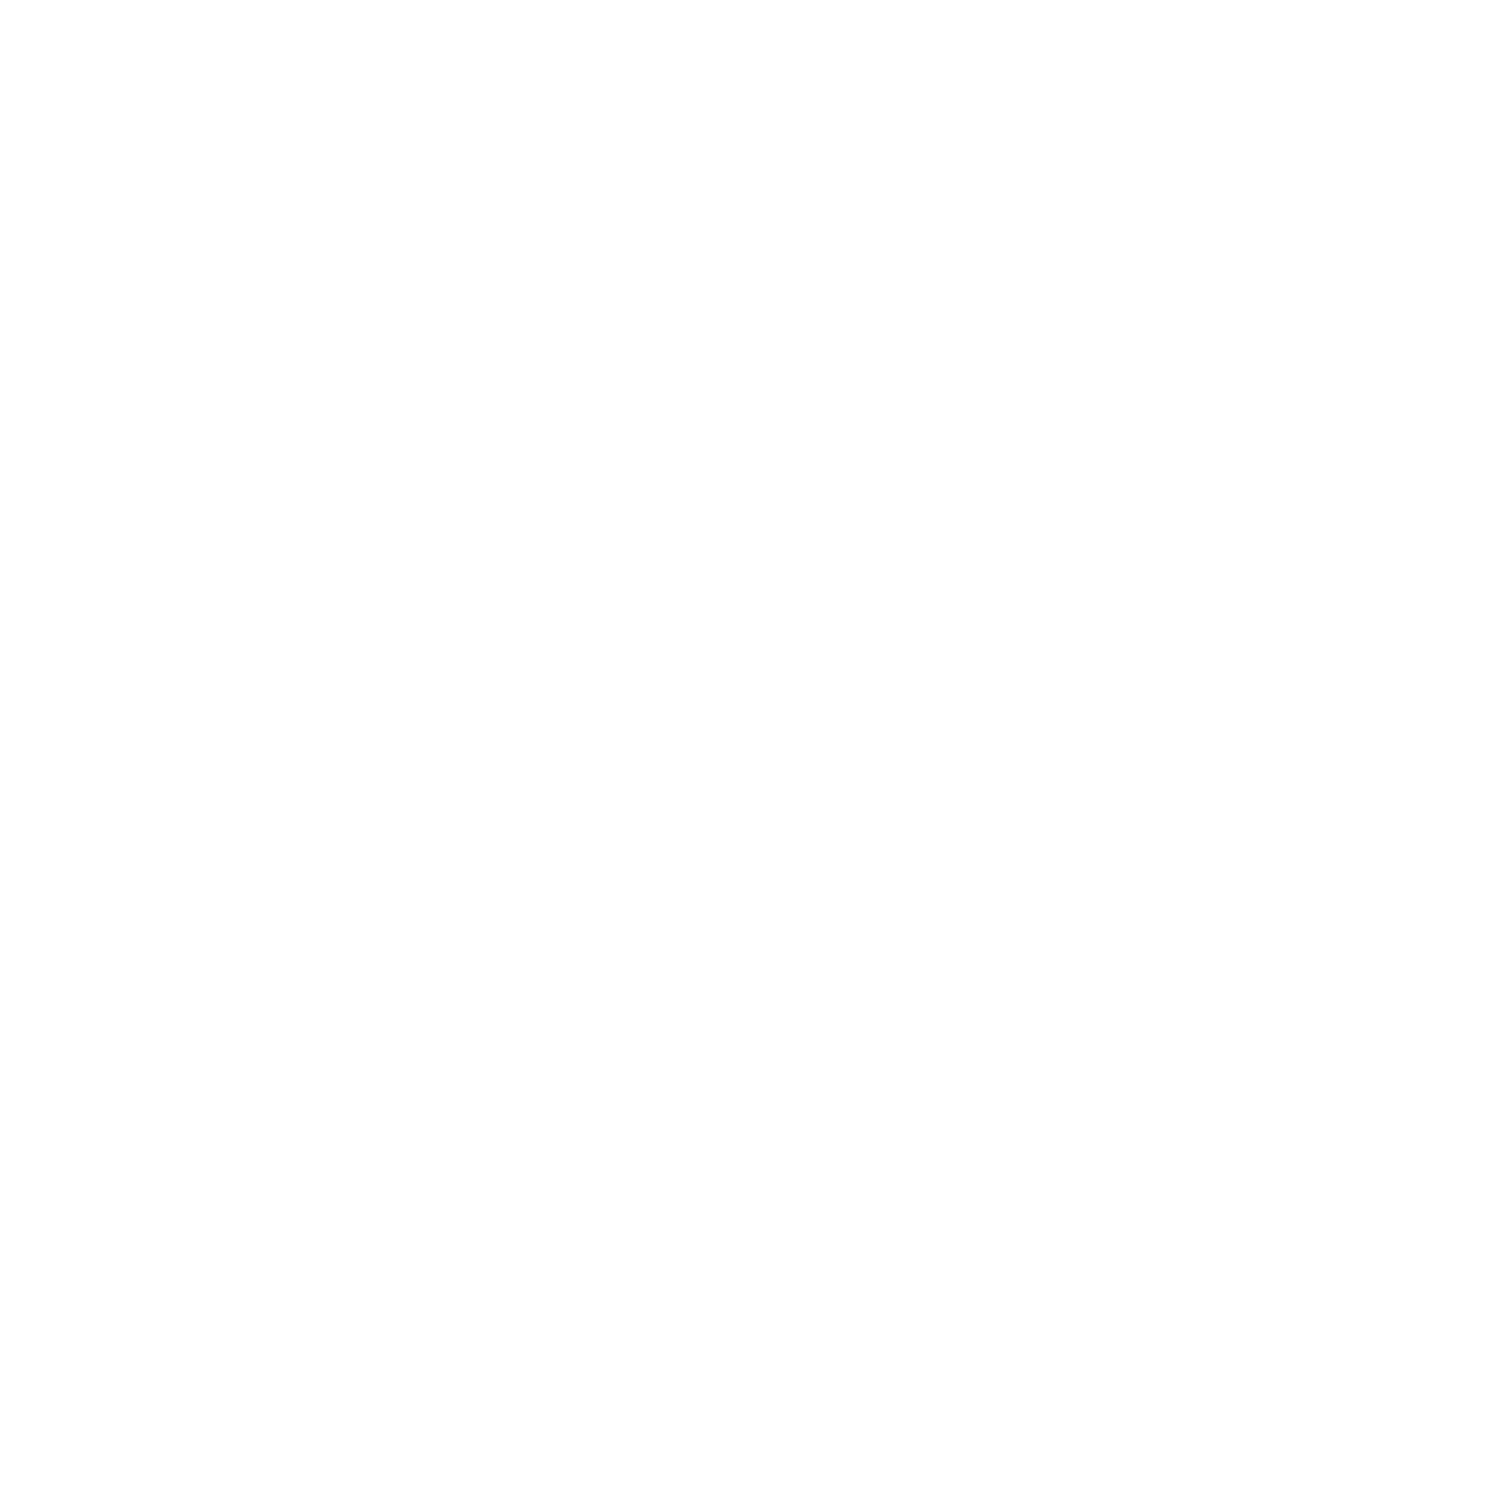 Nashville Life Church